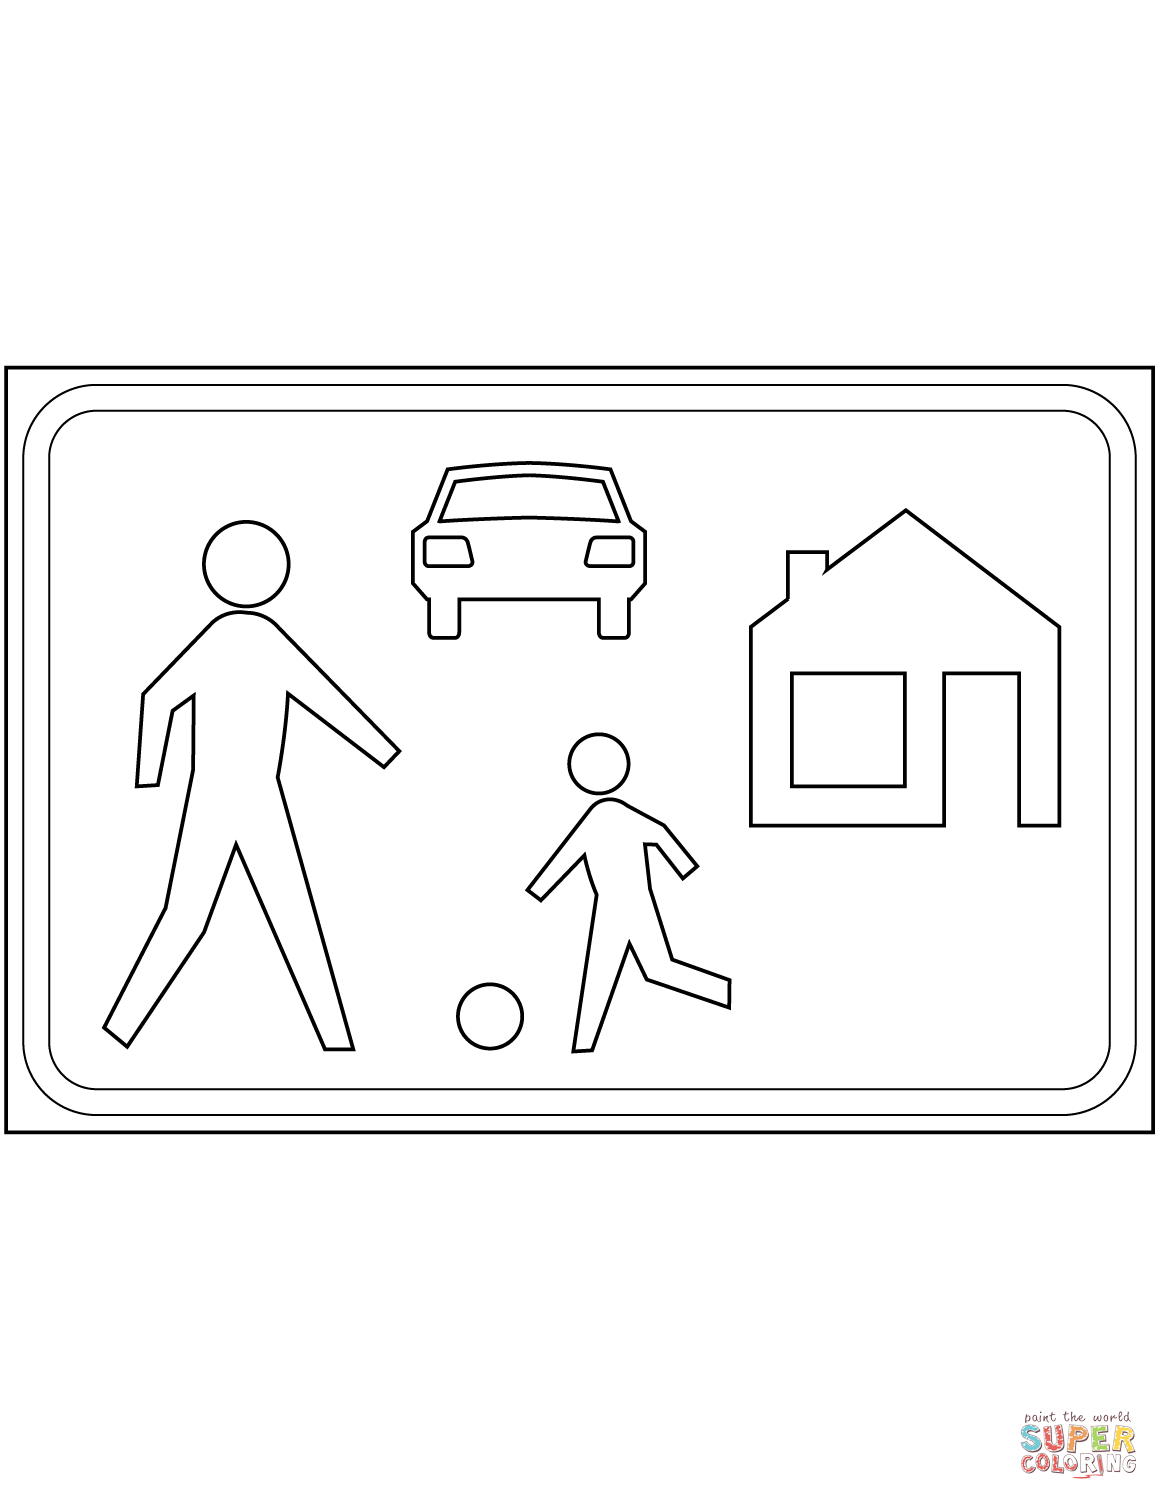 Living Street Sign In The Netherlands Coloring Page